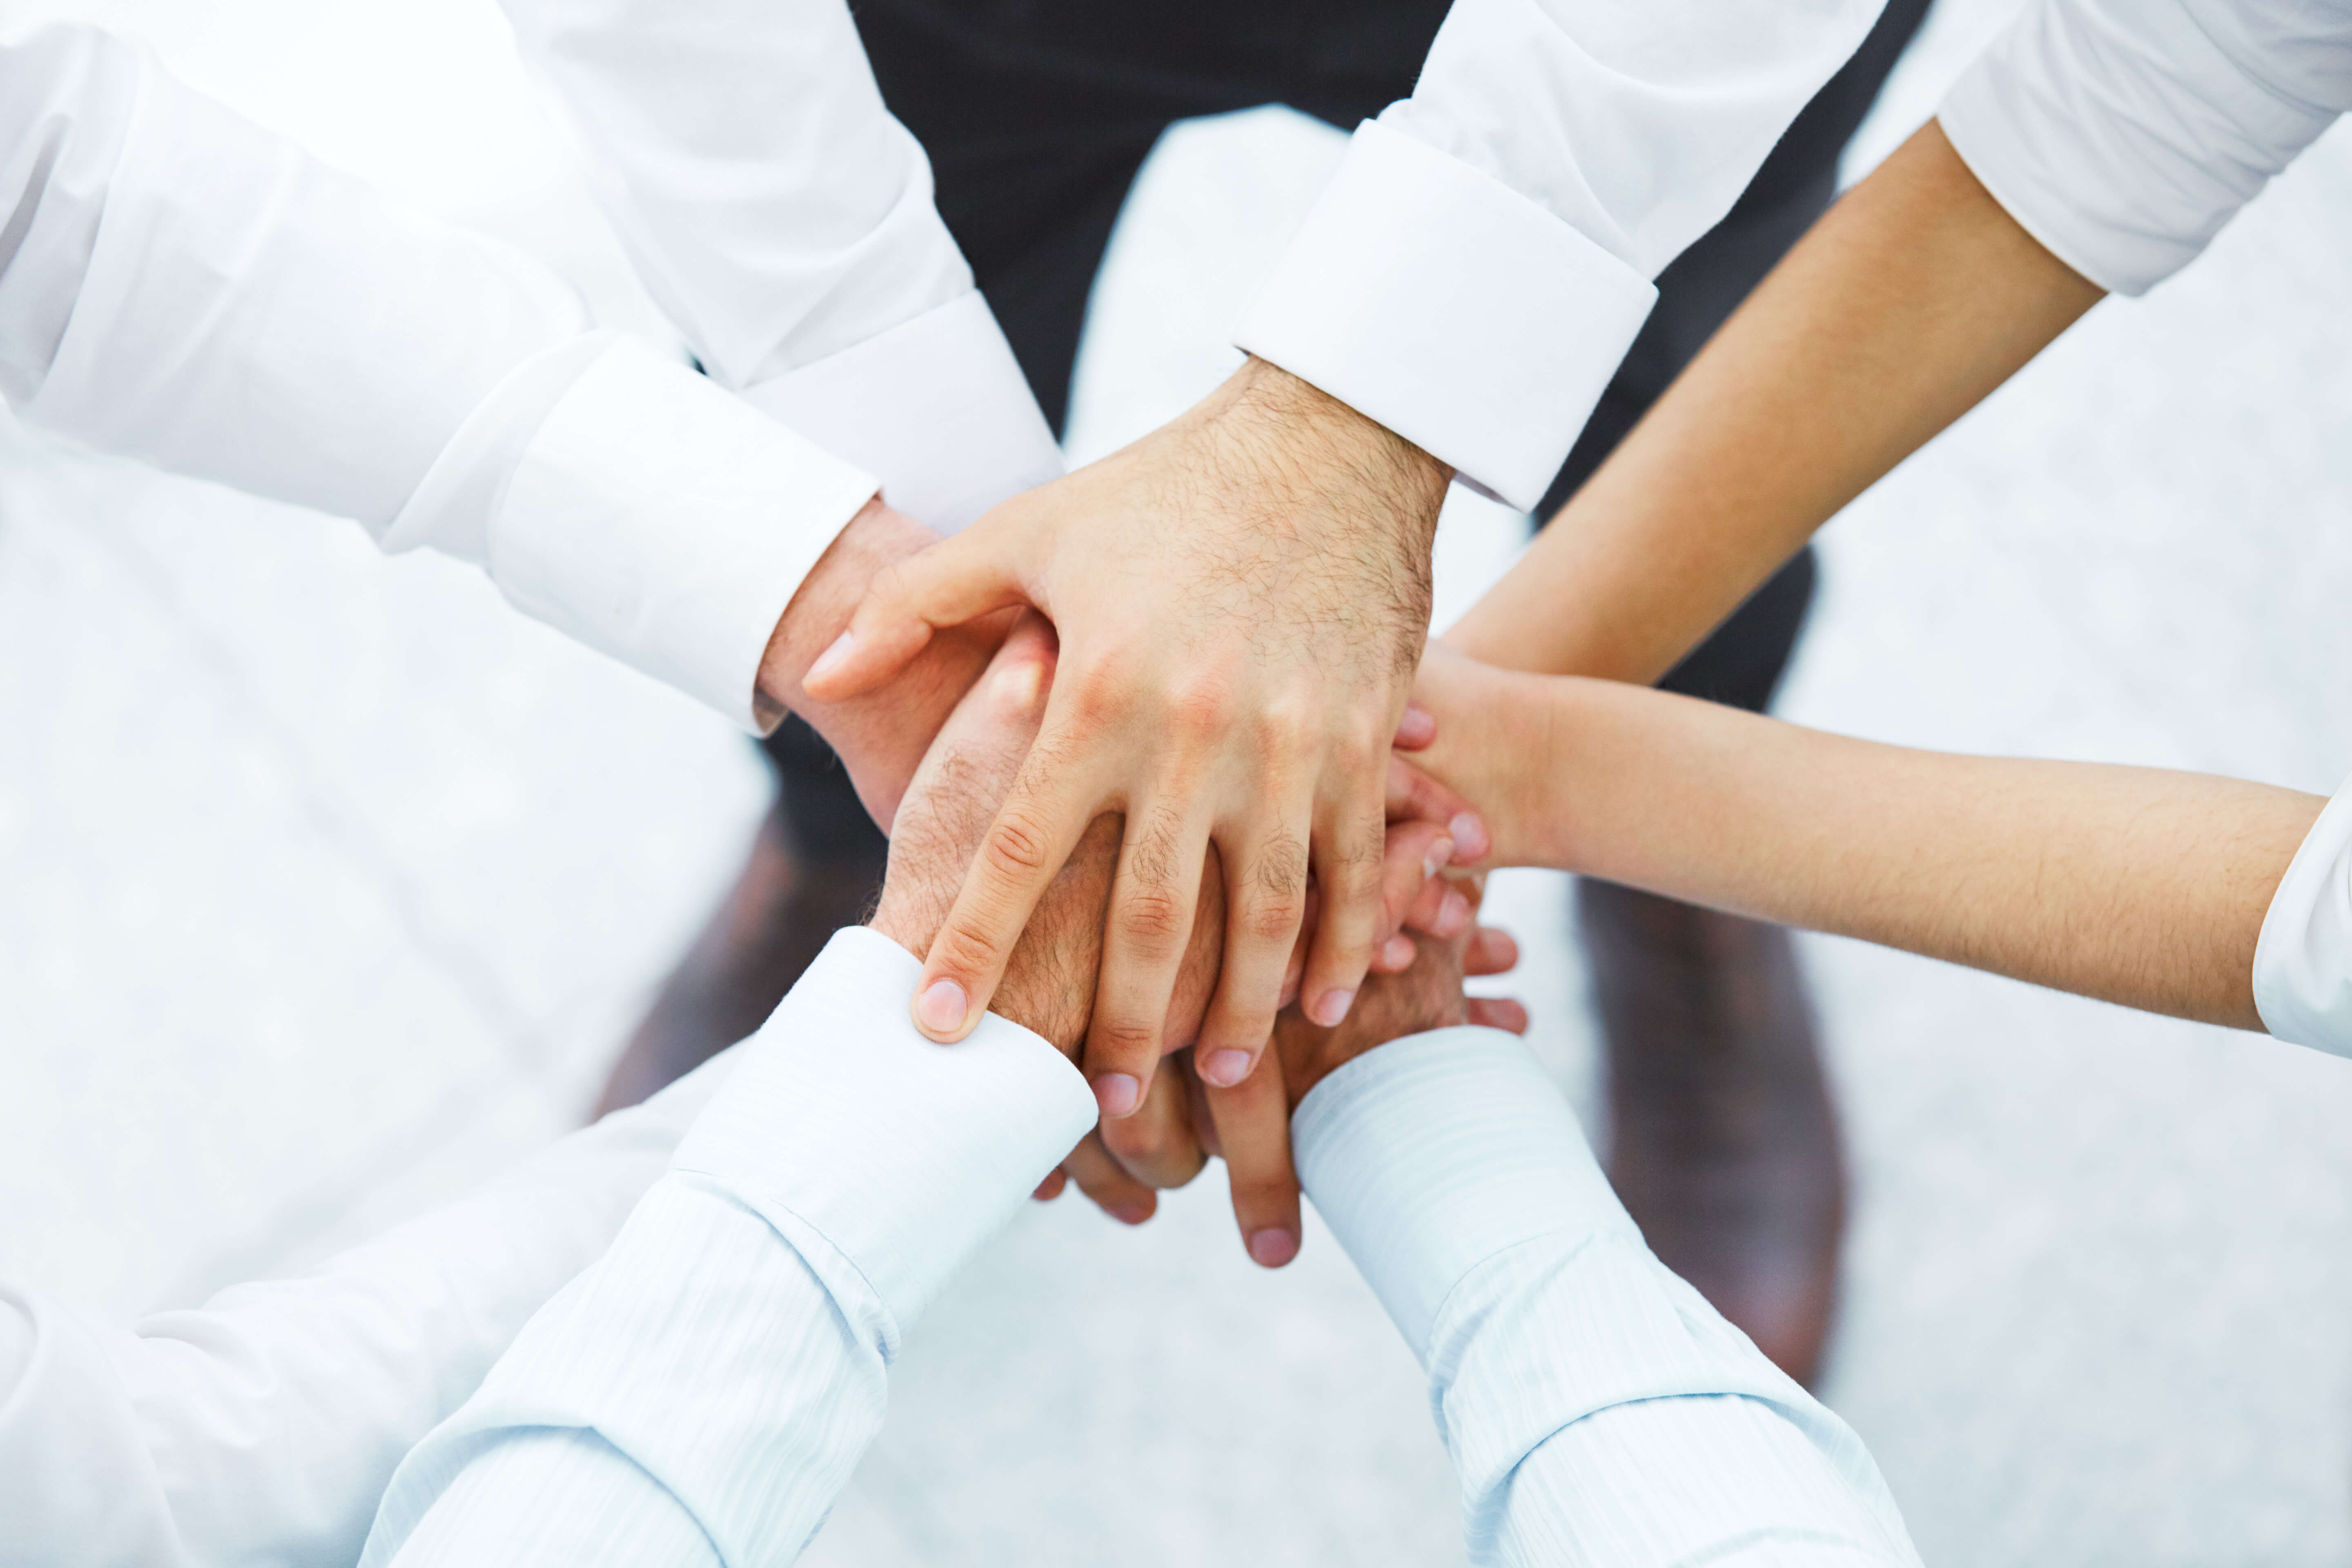 Tips to being a good business partner